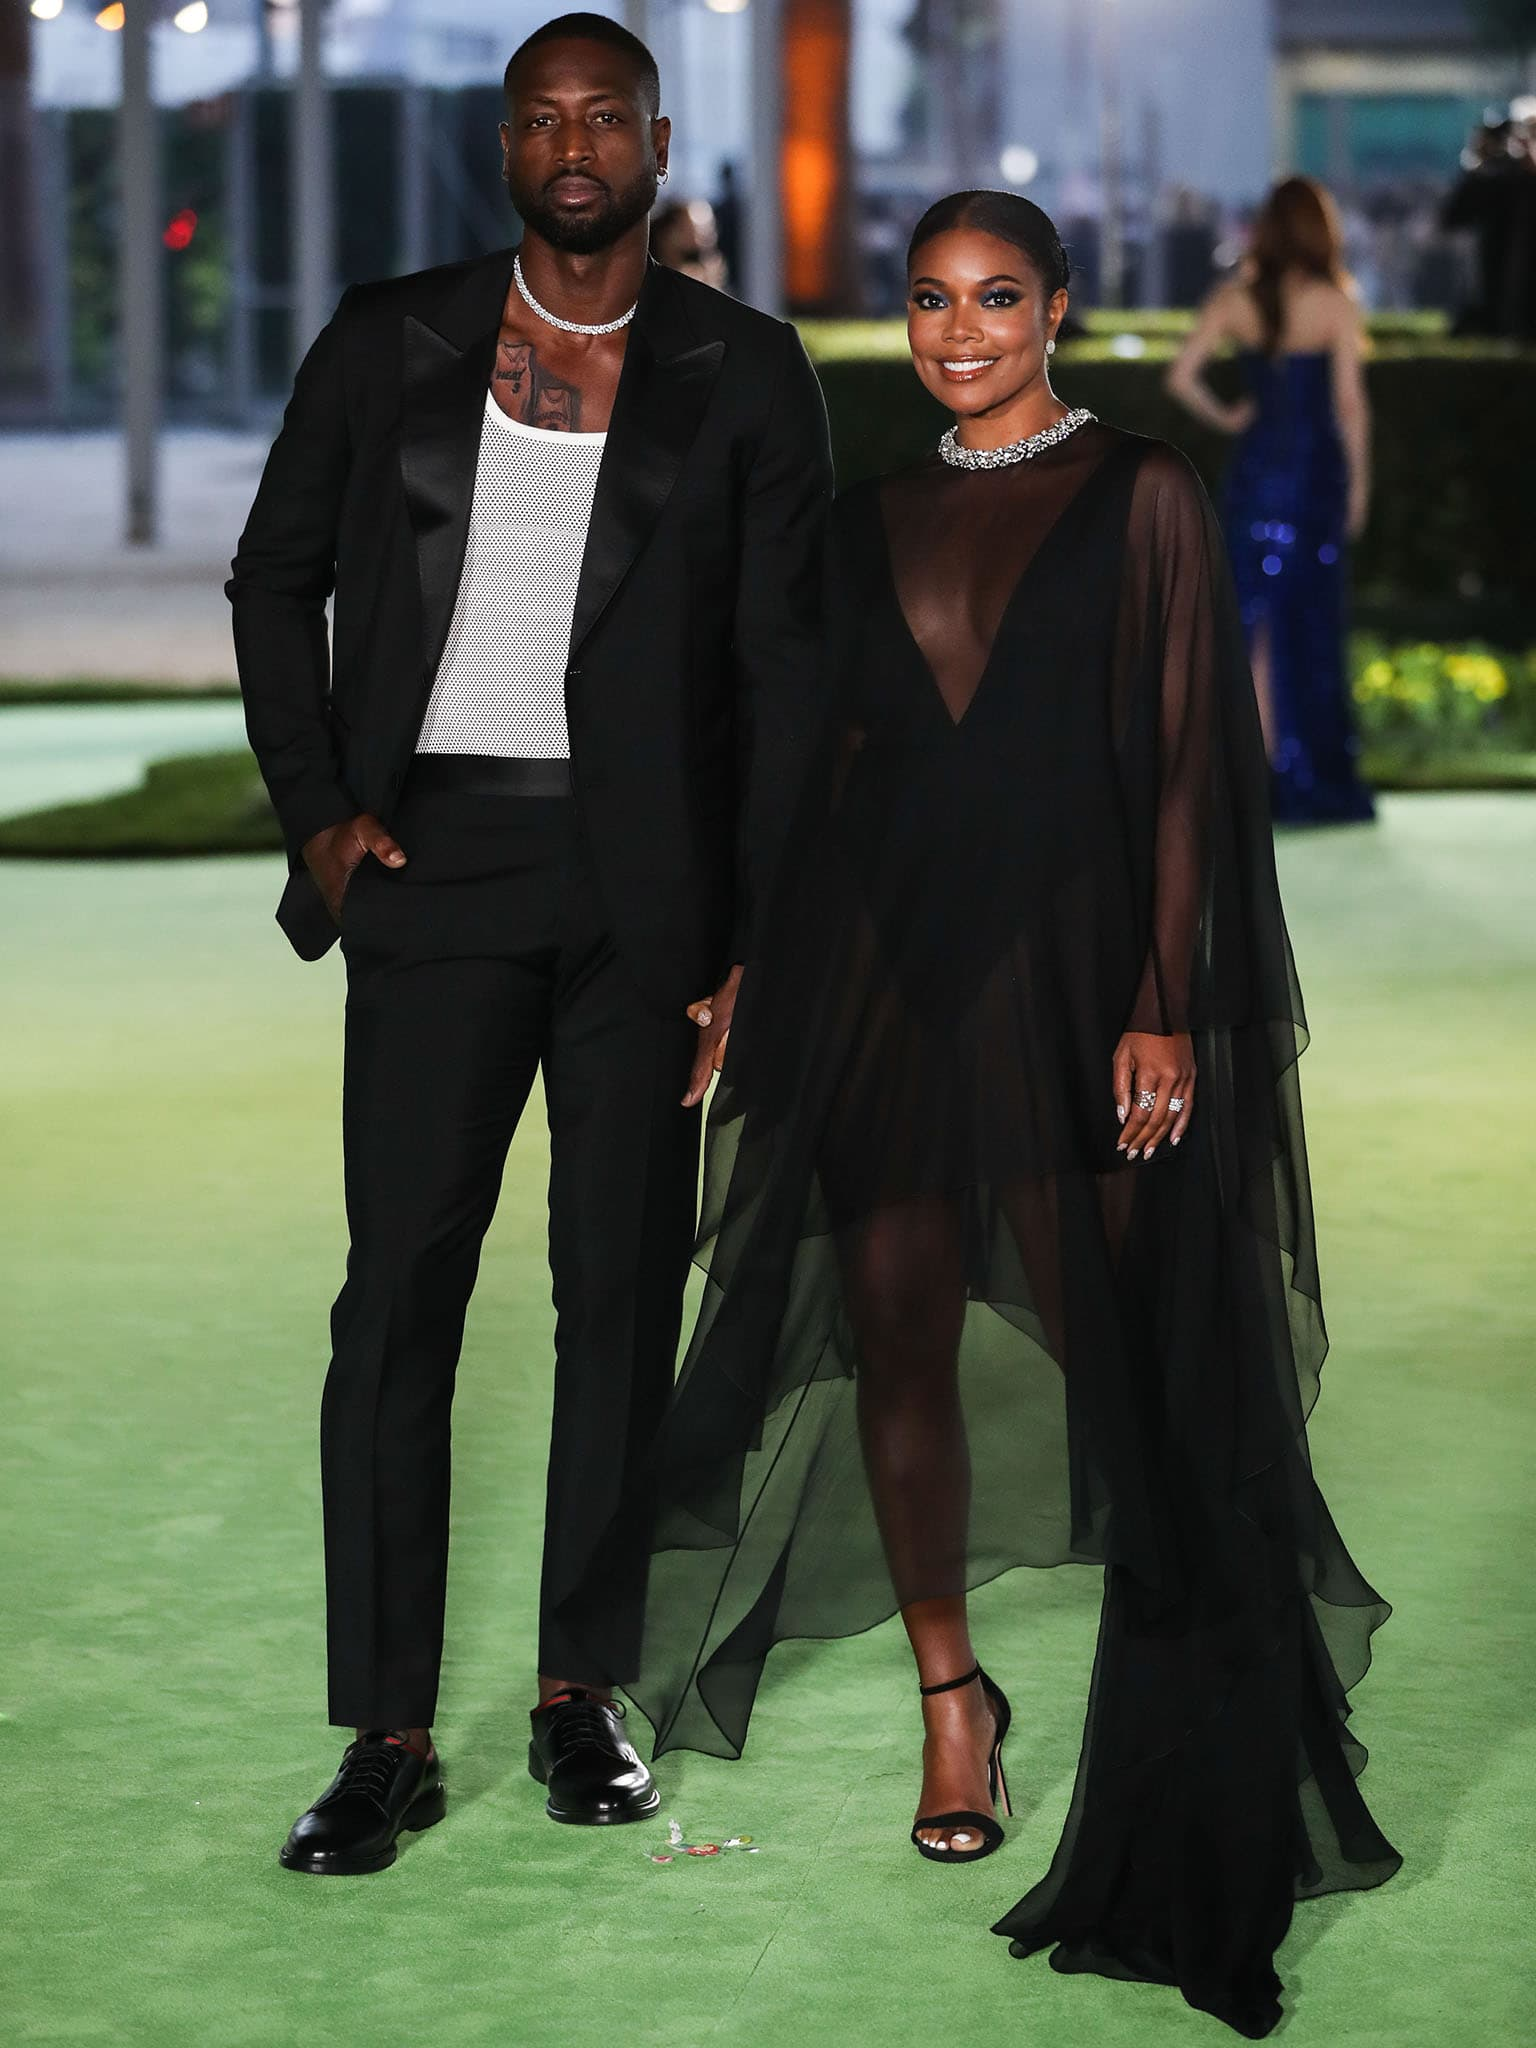 Dwyane Wade and Gabrielle Union in Alexandre Vauthier Fall 2021 Haute Couture see-through outfit at the Academy Museum of Motion Pictures Opening Gala on September 25, 2021